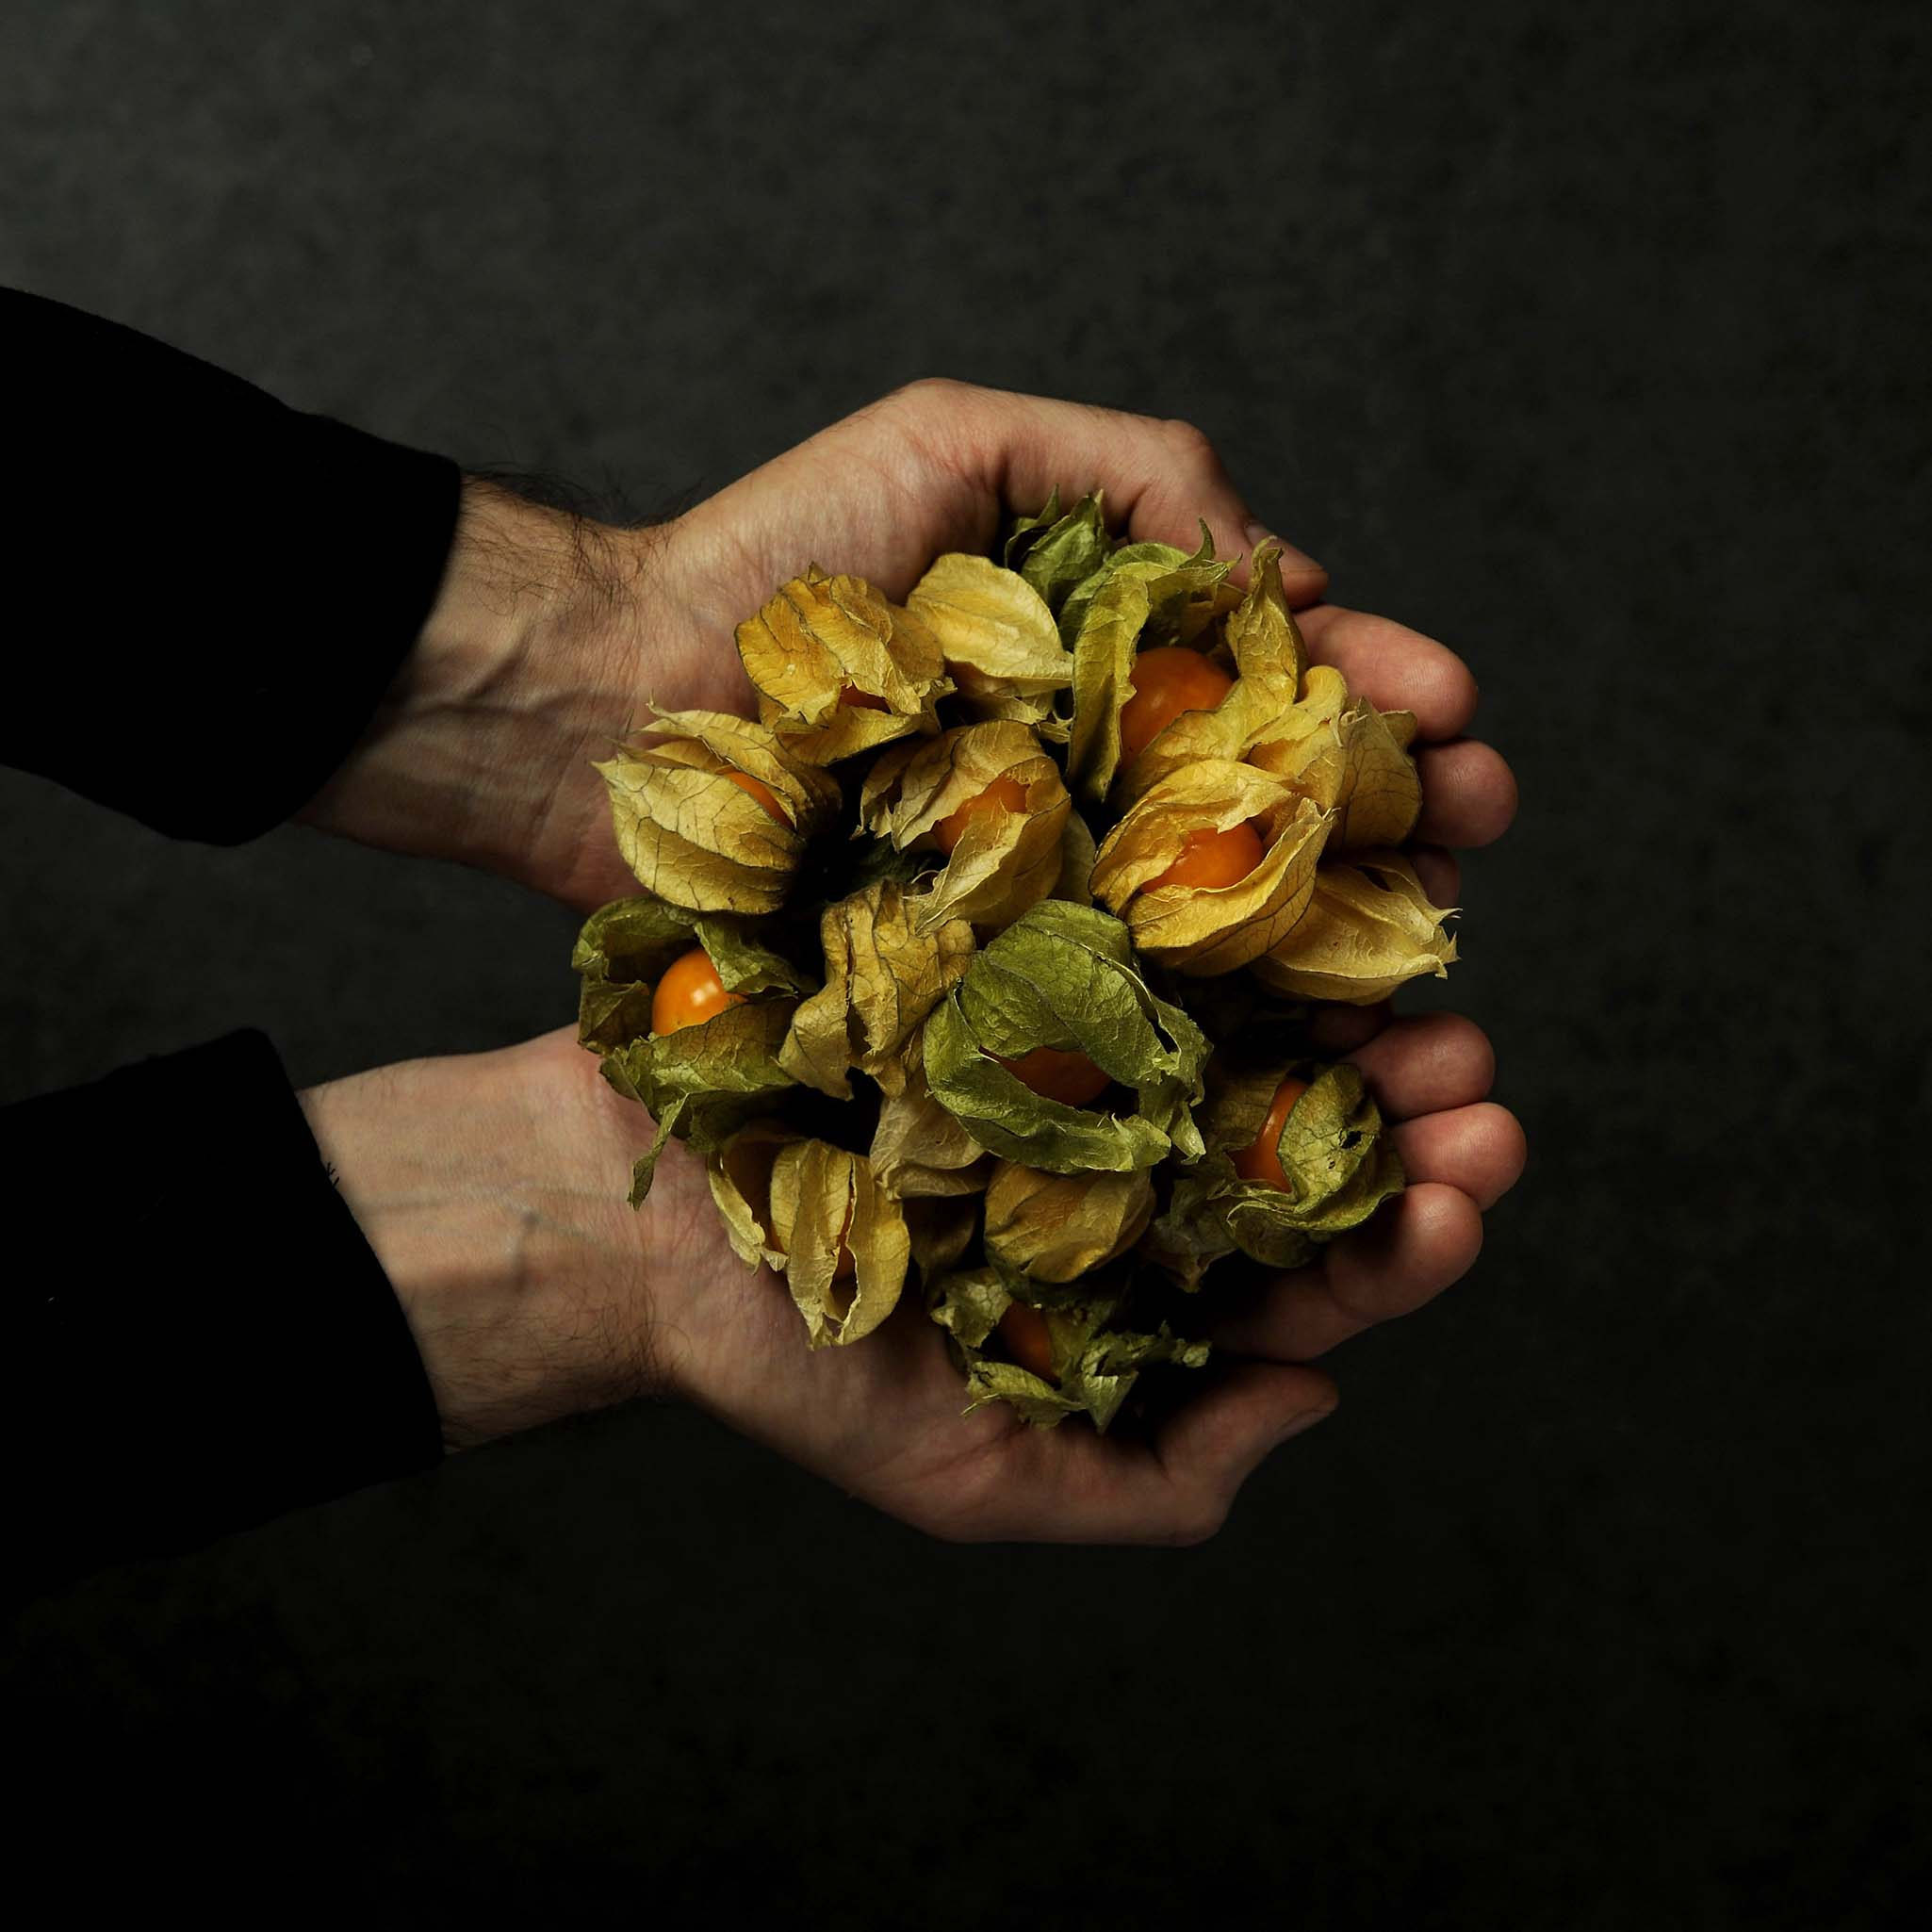 hands hold a big amount of physalis fruits